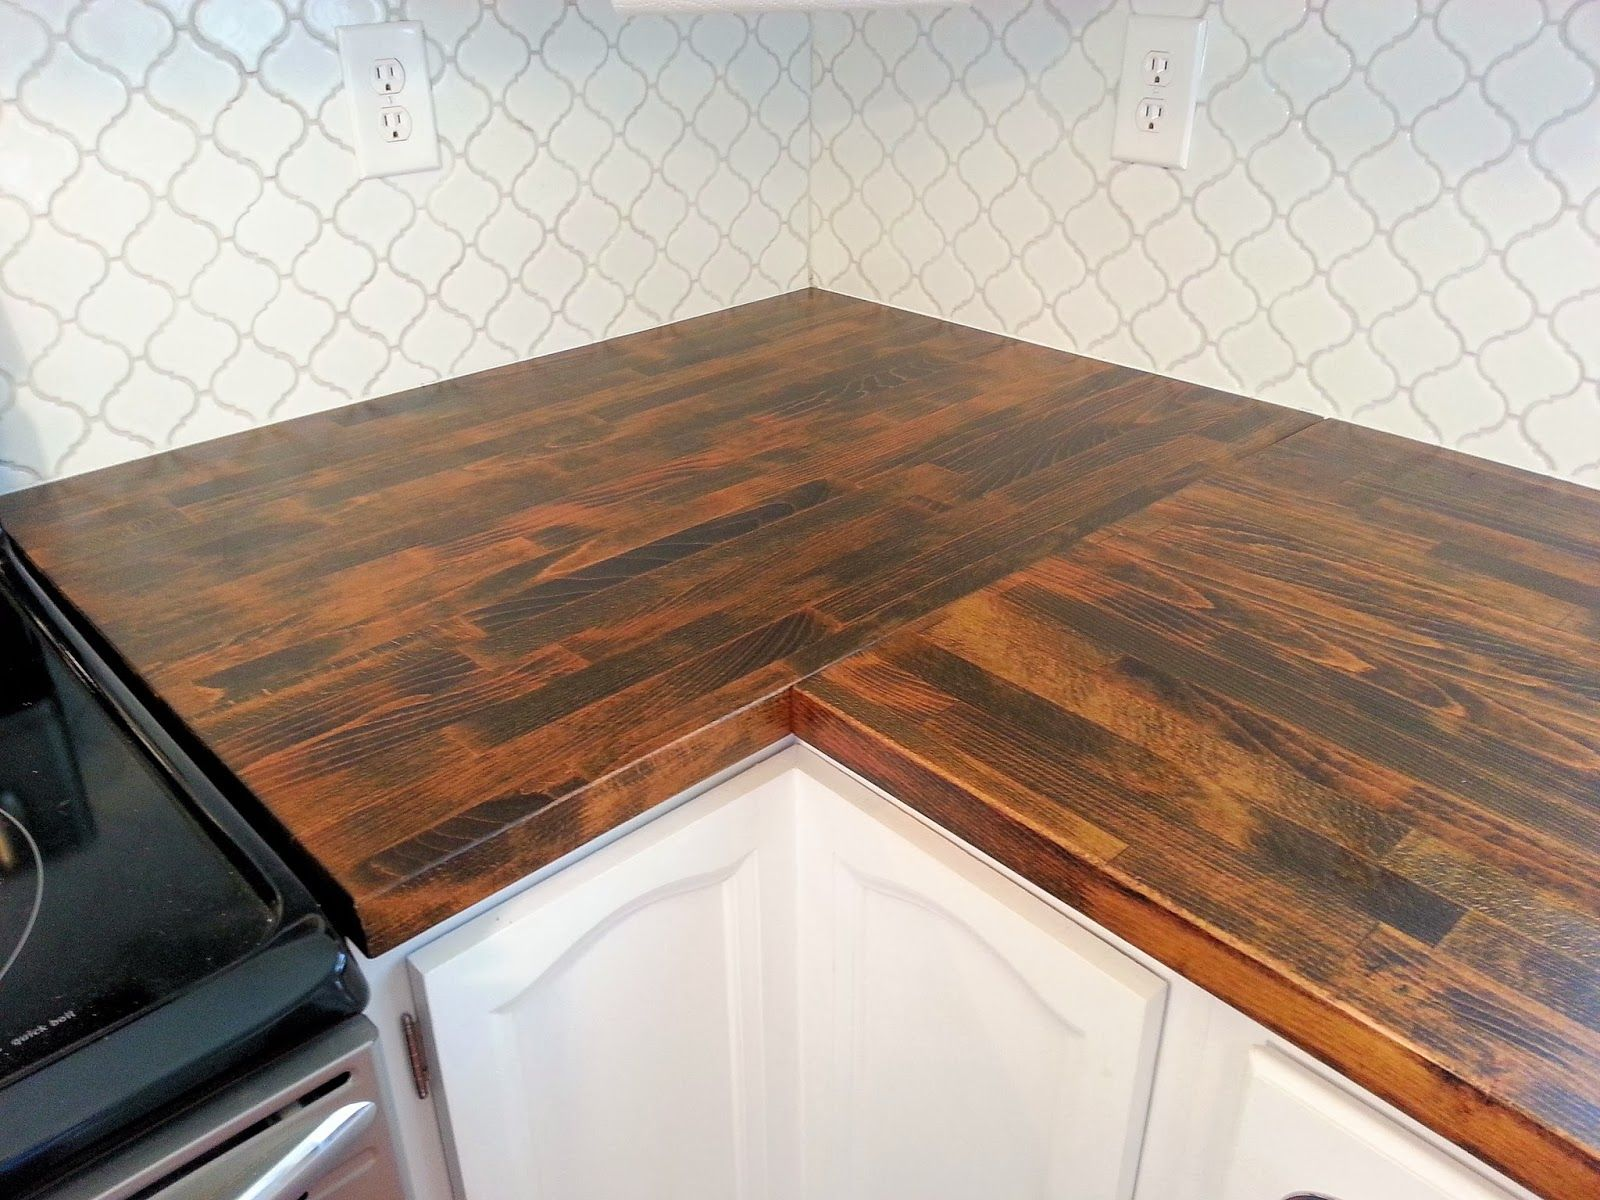 ikea wooden countertops wooden kitchen countertops Images About Butcher Block On Pinterest Countertops Wood